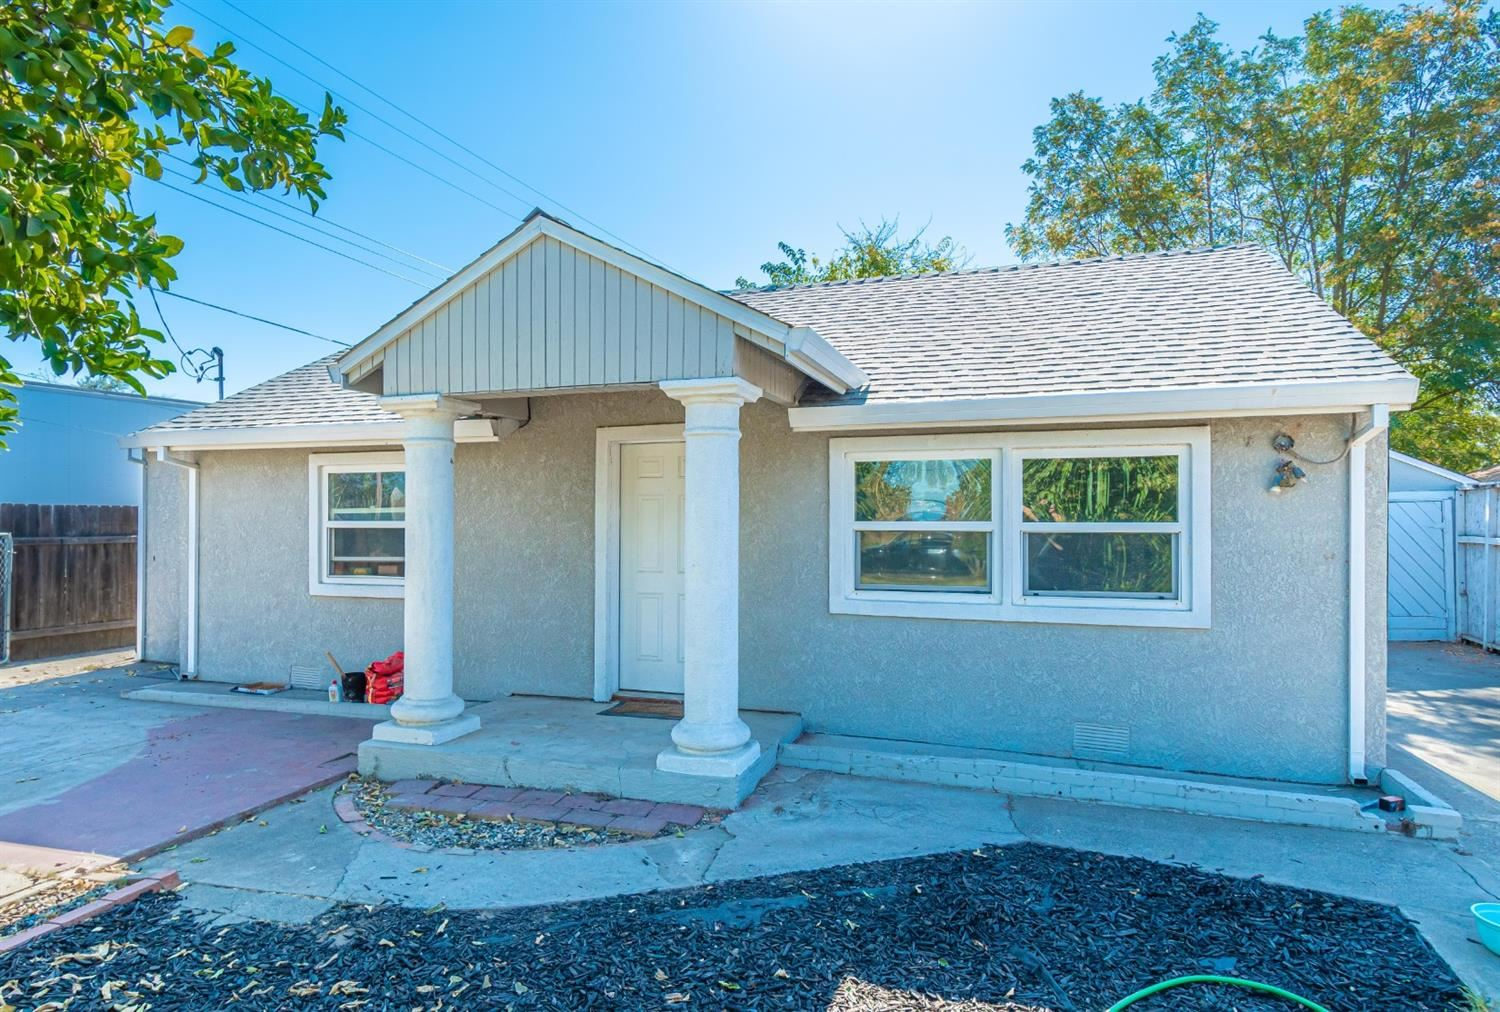 Photo of 2232 Bell Avenue, Sacramento, CA 95838 (MLS # 20063969)